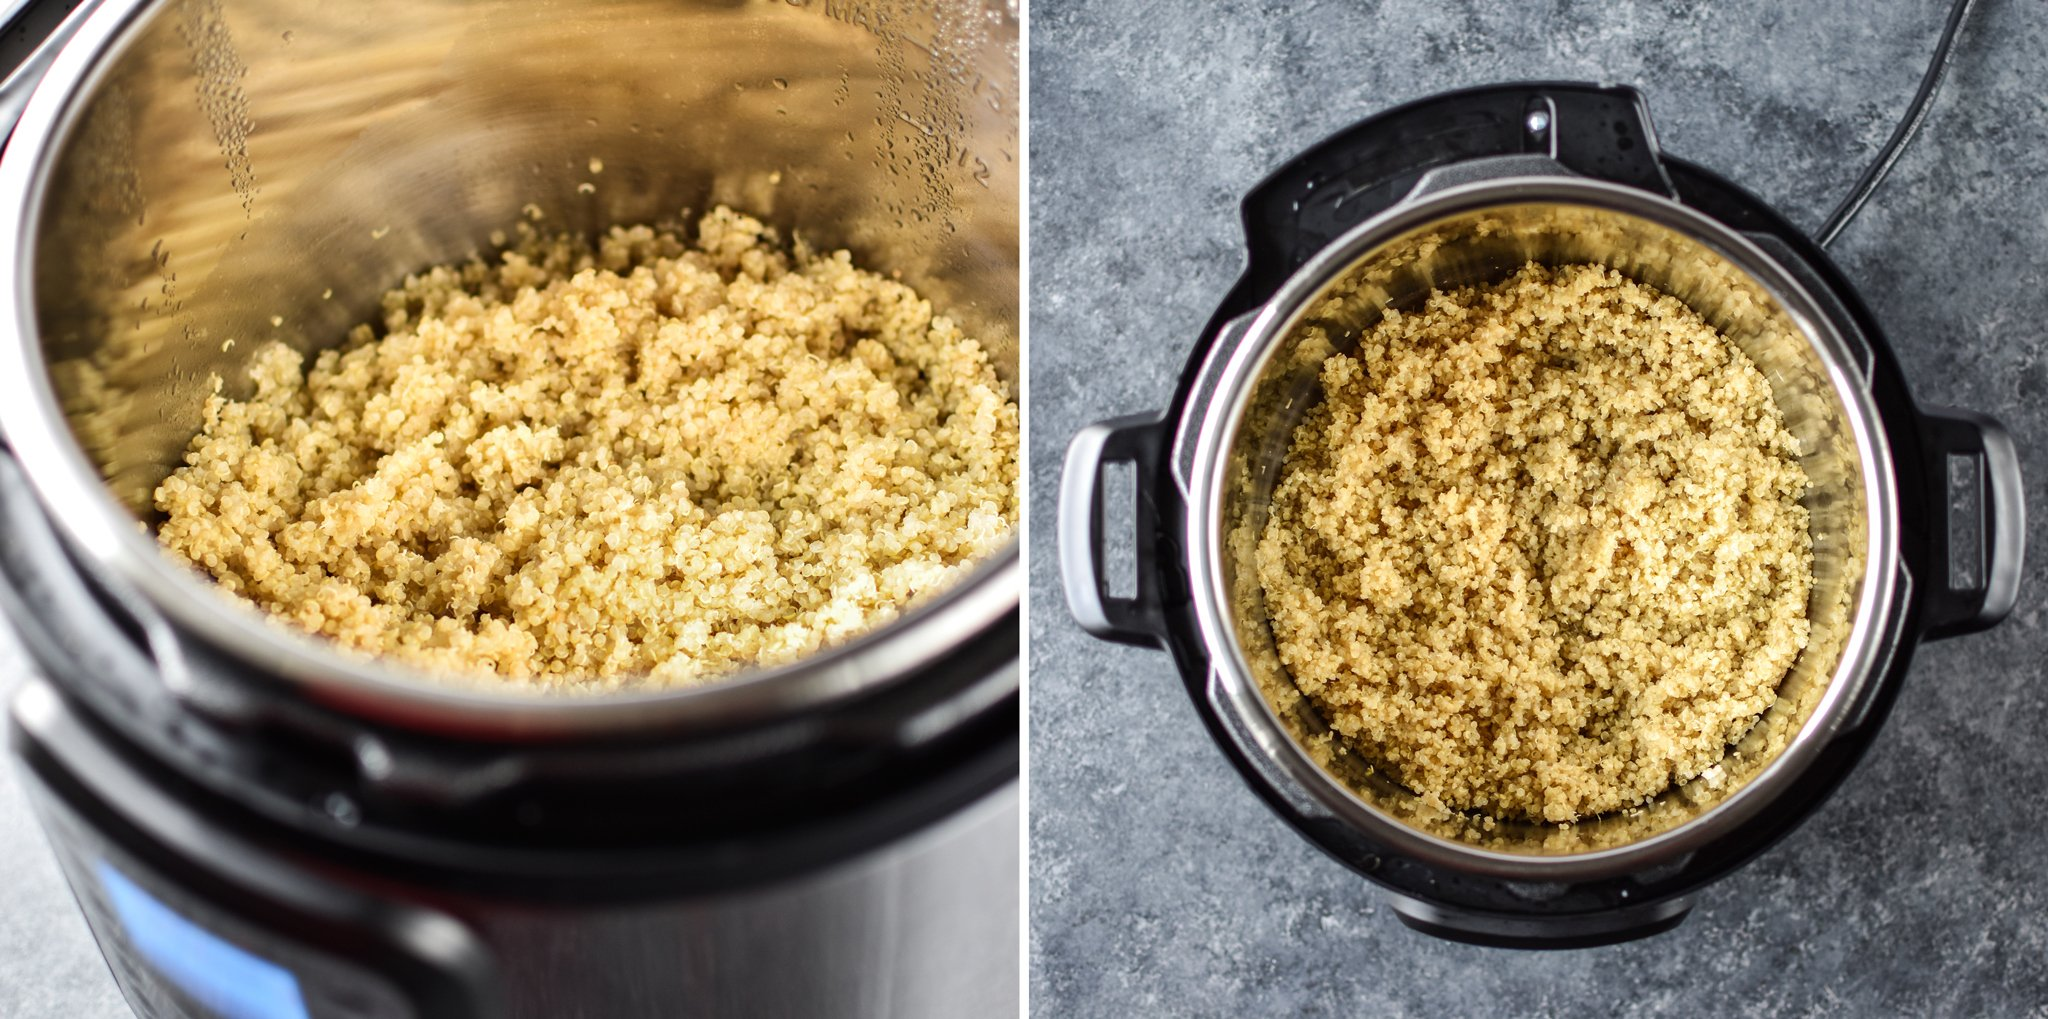 Cooking quinoa in the Instant Pot.